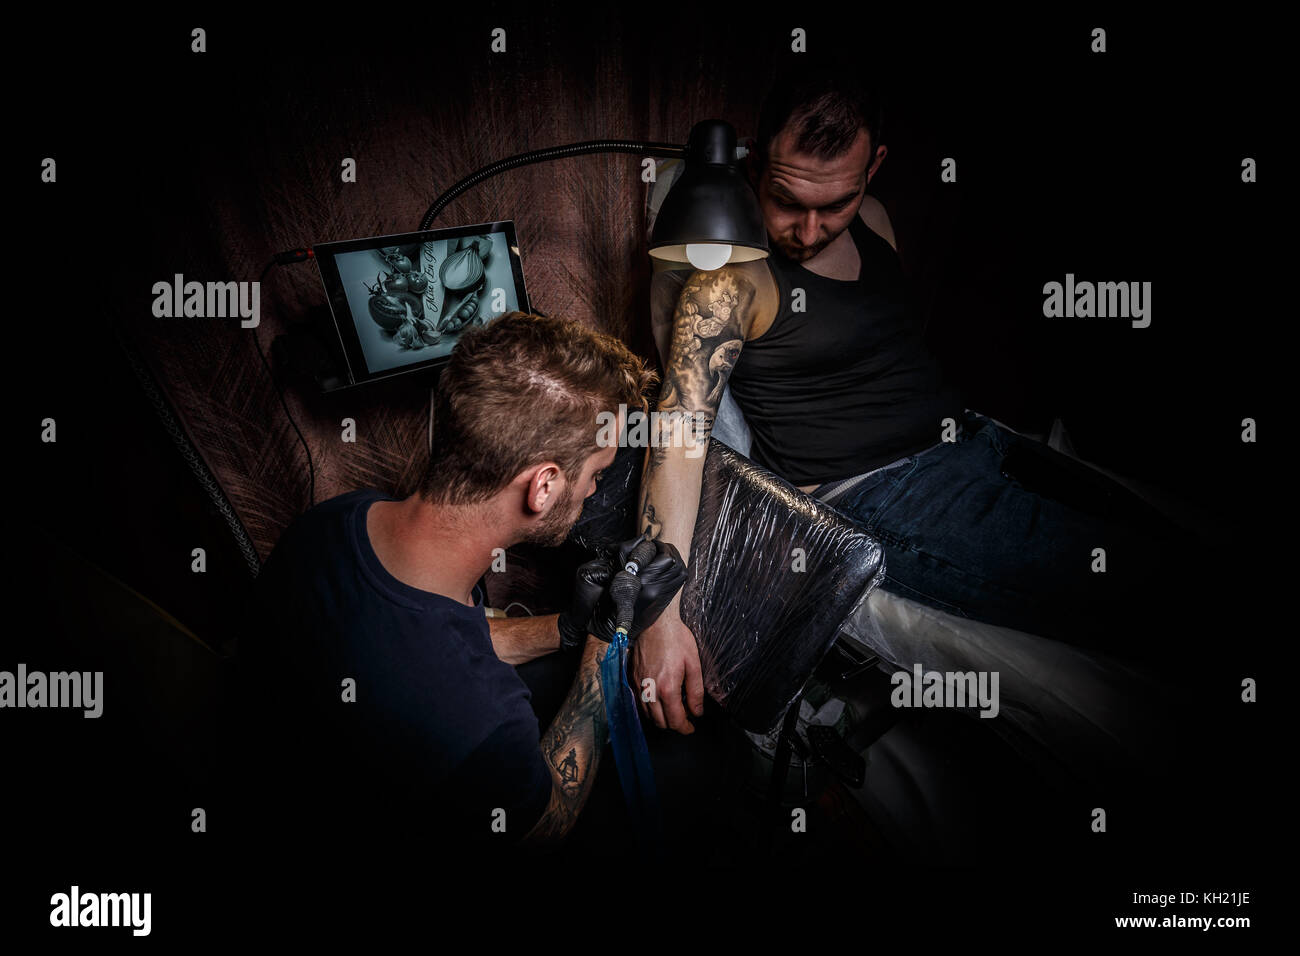 Portrait of a man tattoo master showing a process of tattoo creation in a man's hand under the lamplight - Stock Image